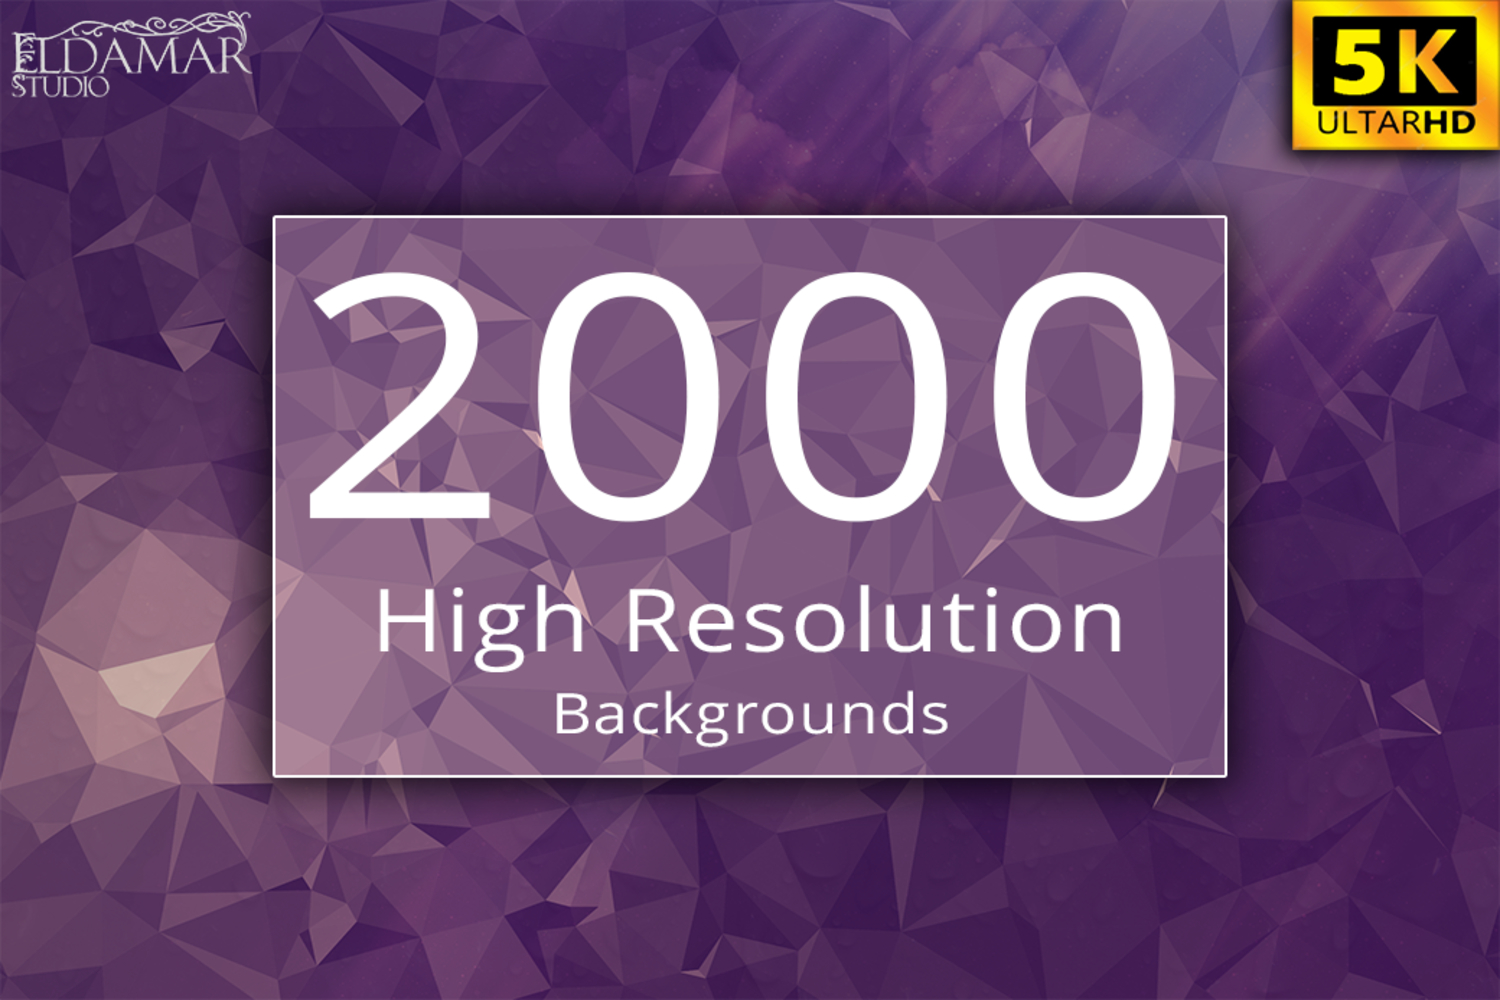 2000 High Resolution Backgrounds Vol.2 example image 1